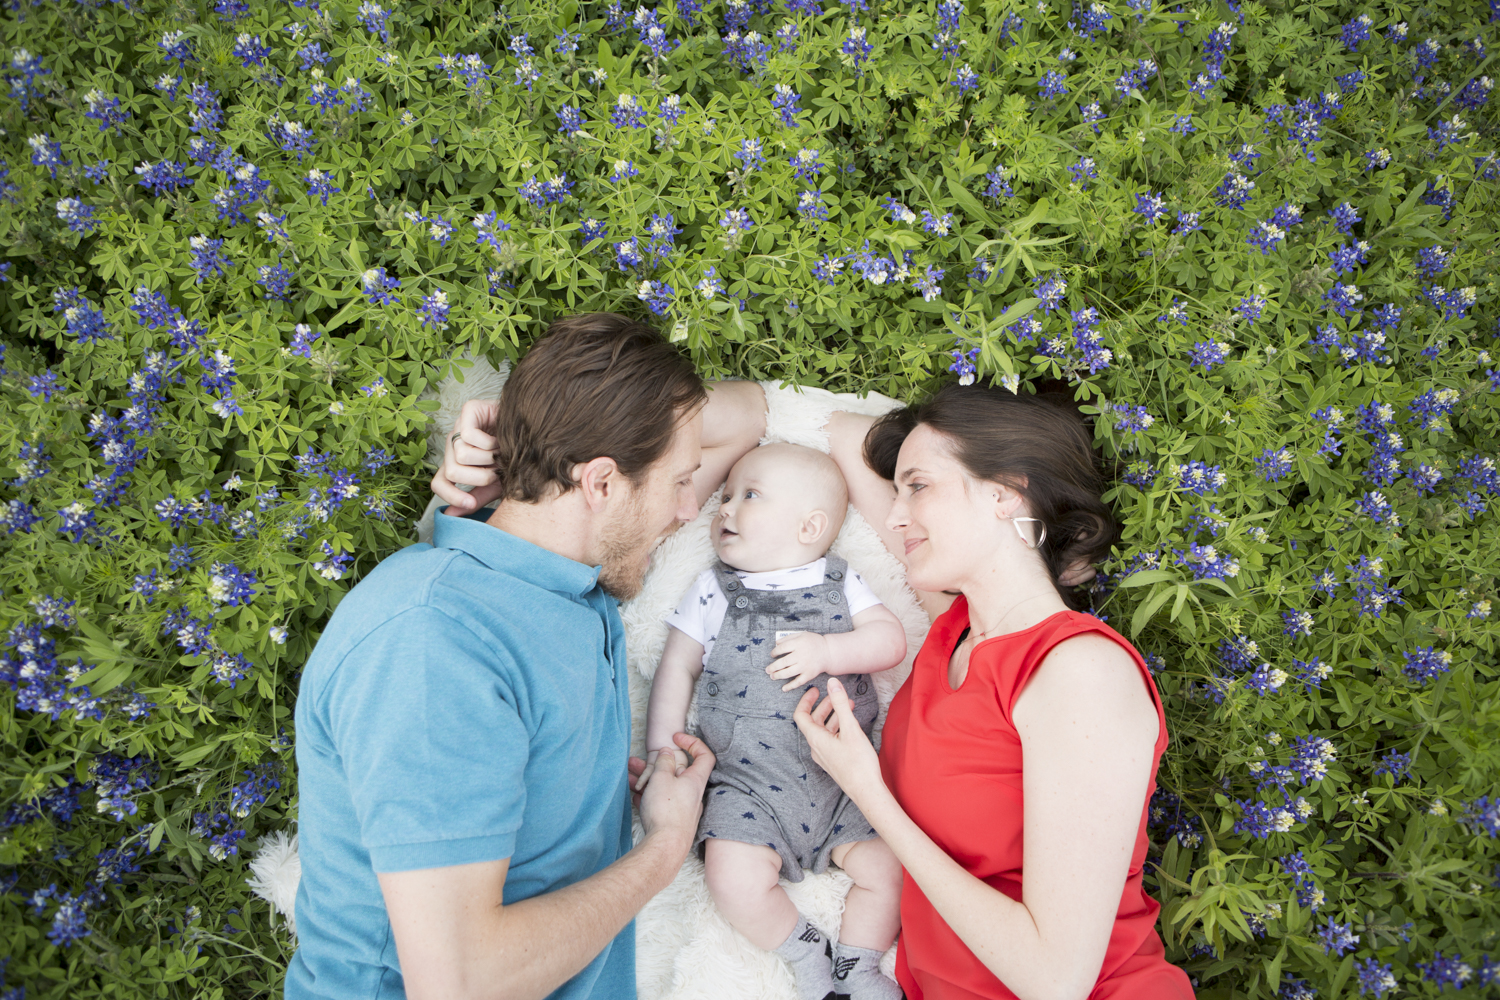 Besides the beautiful colors and people in this image, all I see is connection, wonder, and love. I can feel the adoration that these parents have for their baby in this image and I can truly get a sense of the baby's wonder as he gazes into his dad's eyes. Definitely one of my favorites.